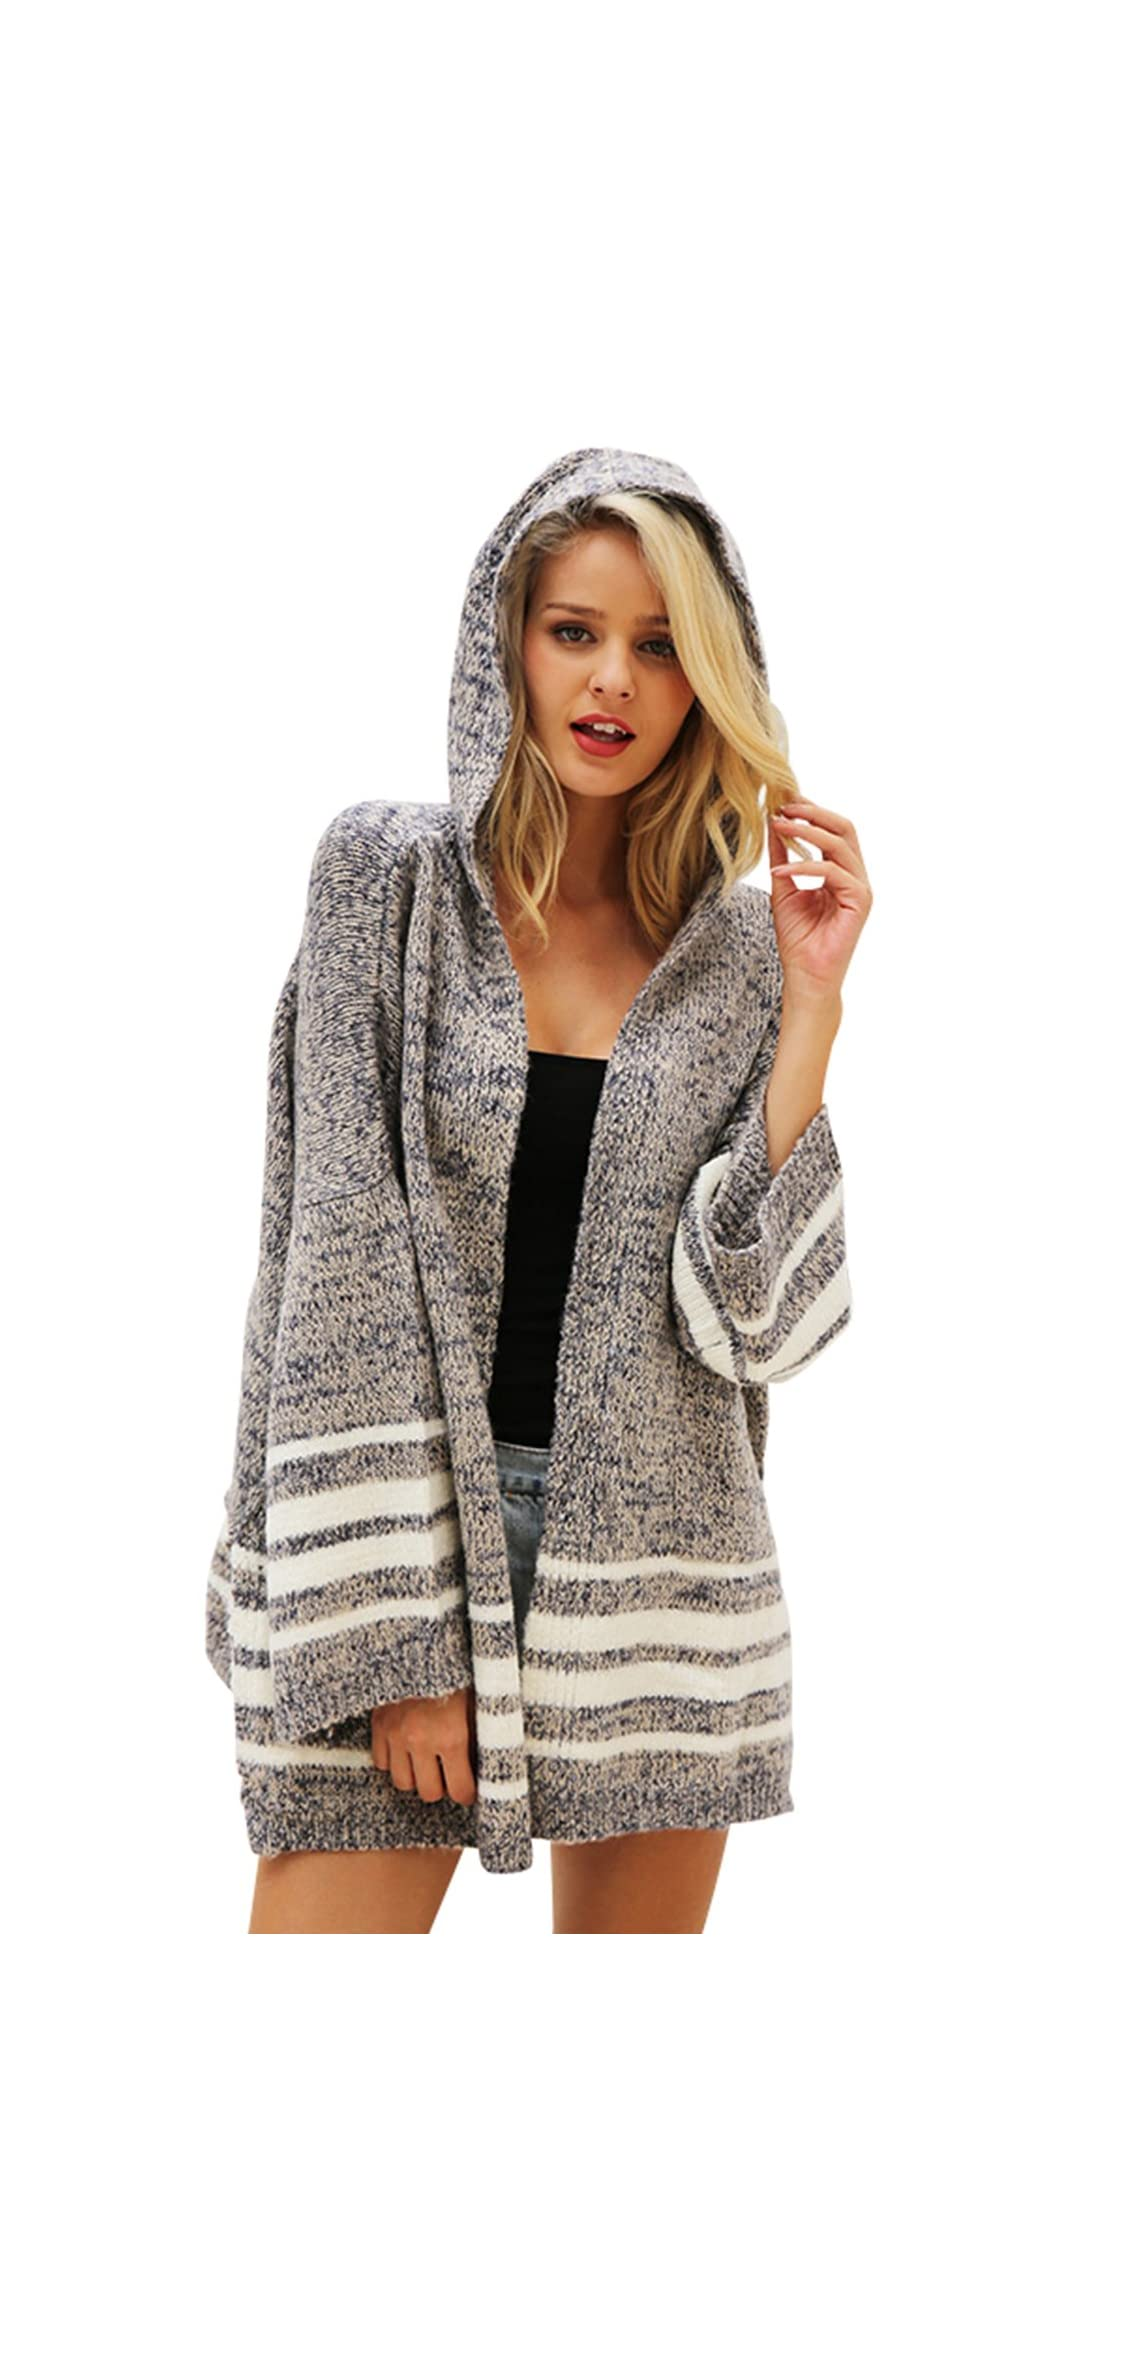 Women's Flare Sleeve Knitted Hooded Cardigan Sweater